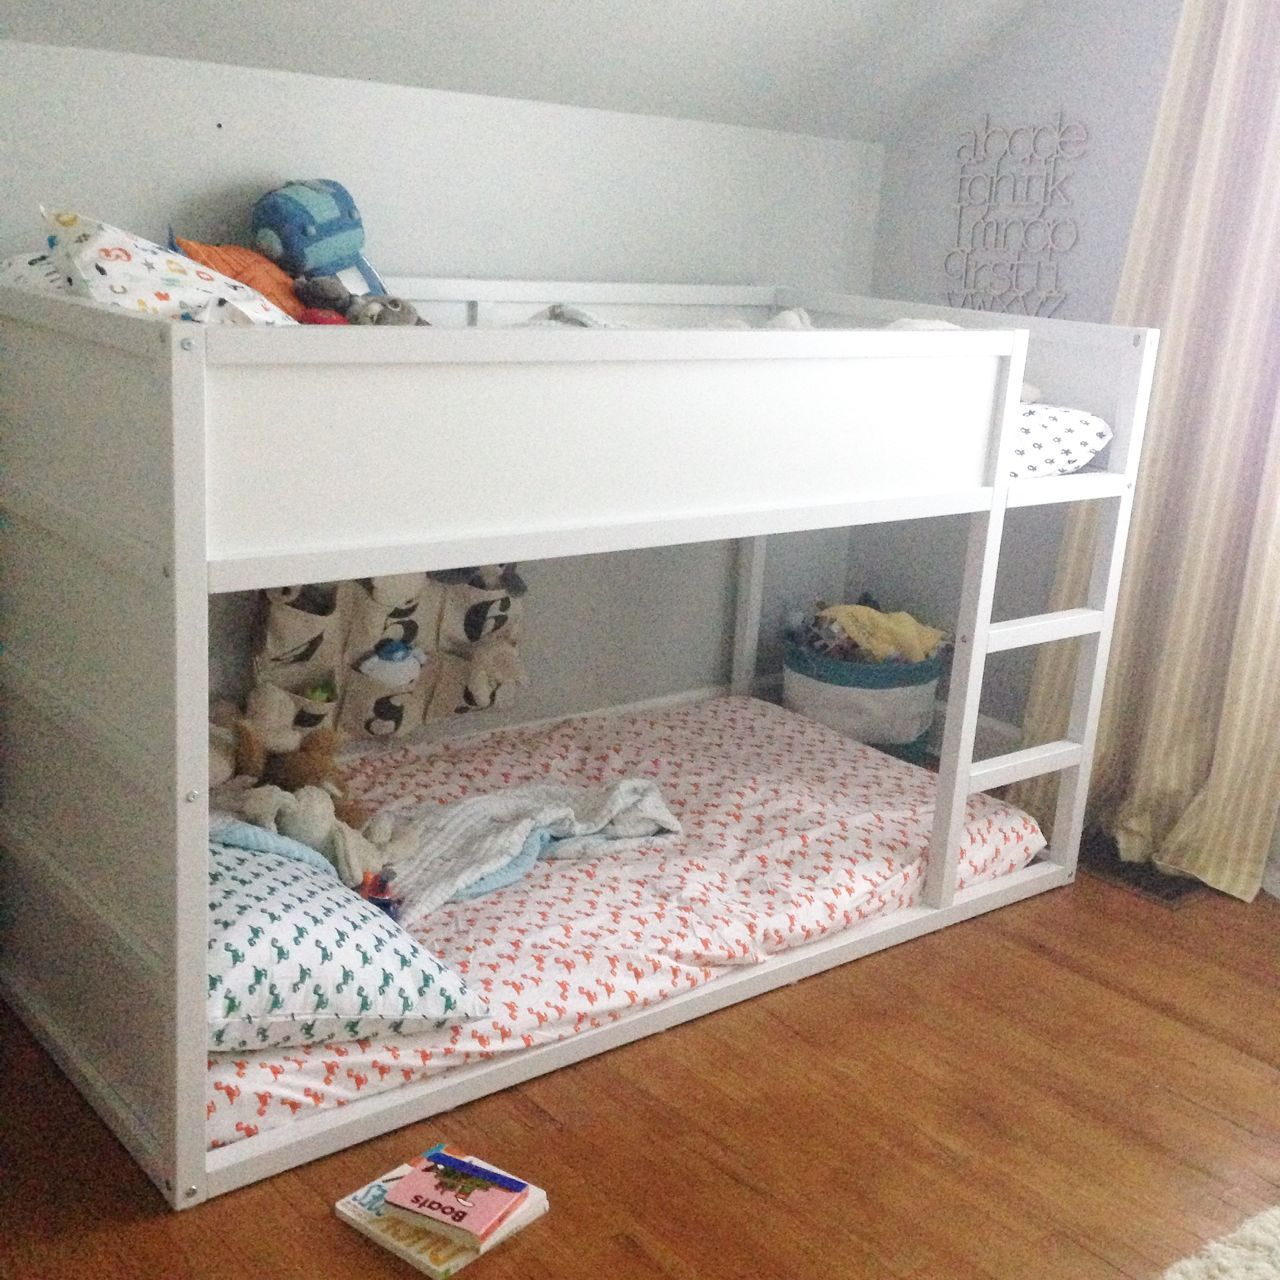 How to paint the ikea kura bed kura bed pinterest ikea kura bed kura bed and ikea kura - Ikea bunk bed room ideas ...